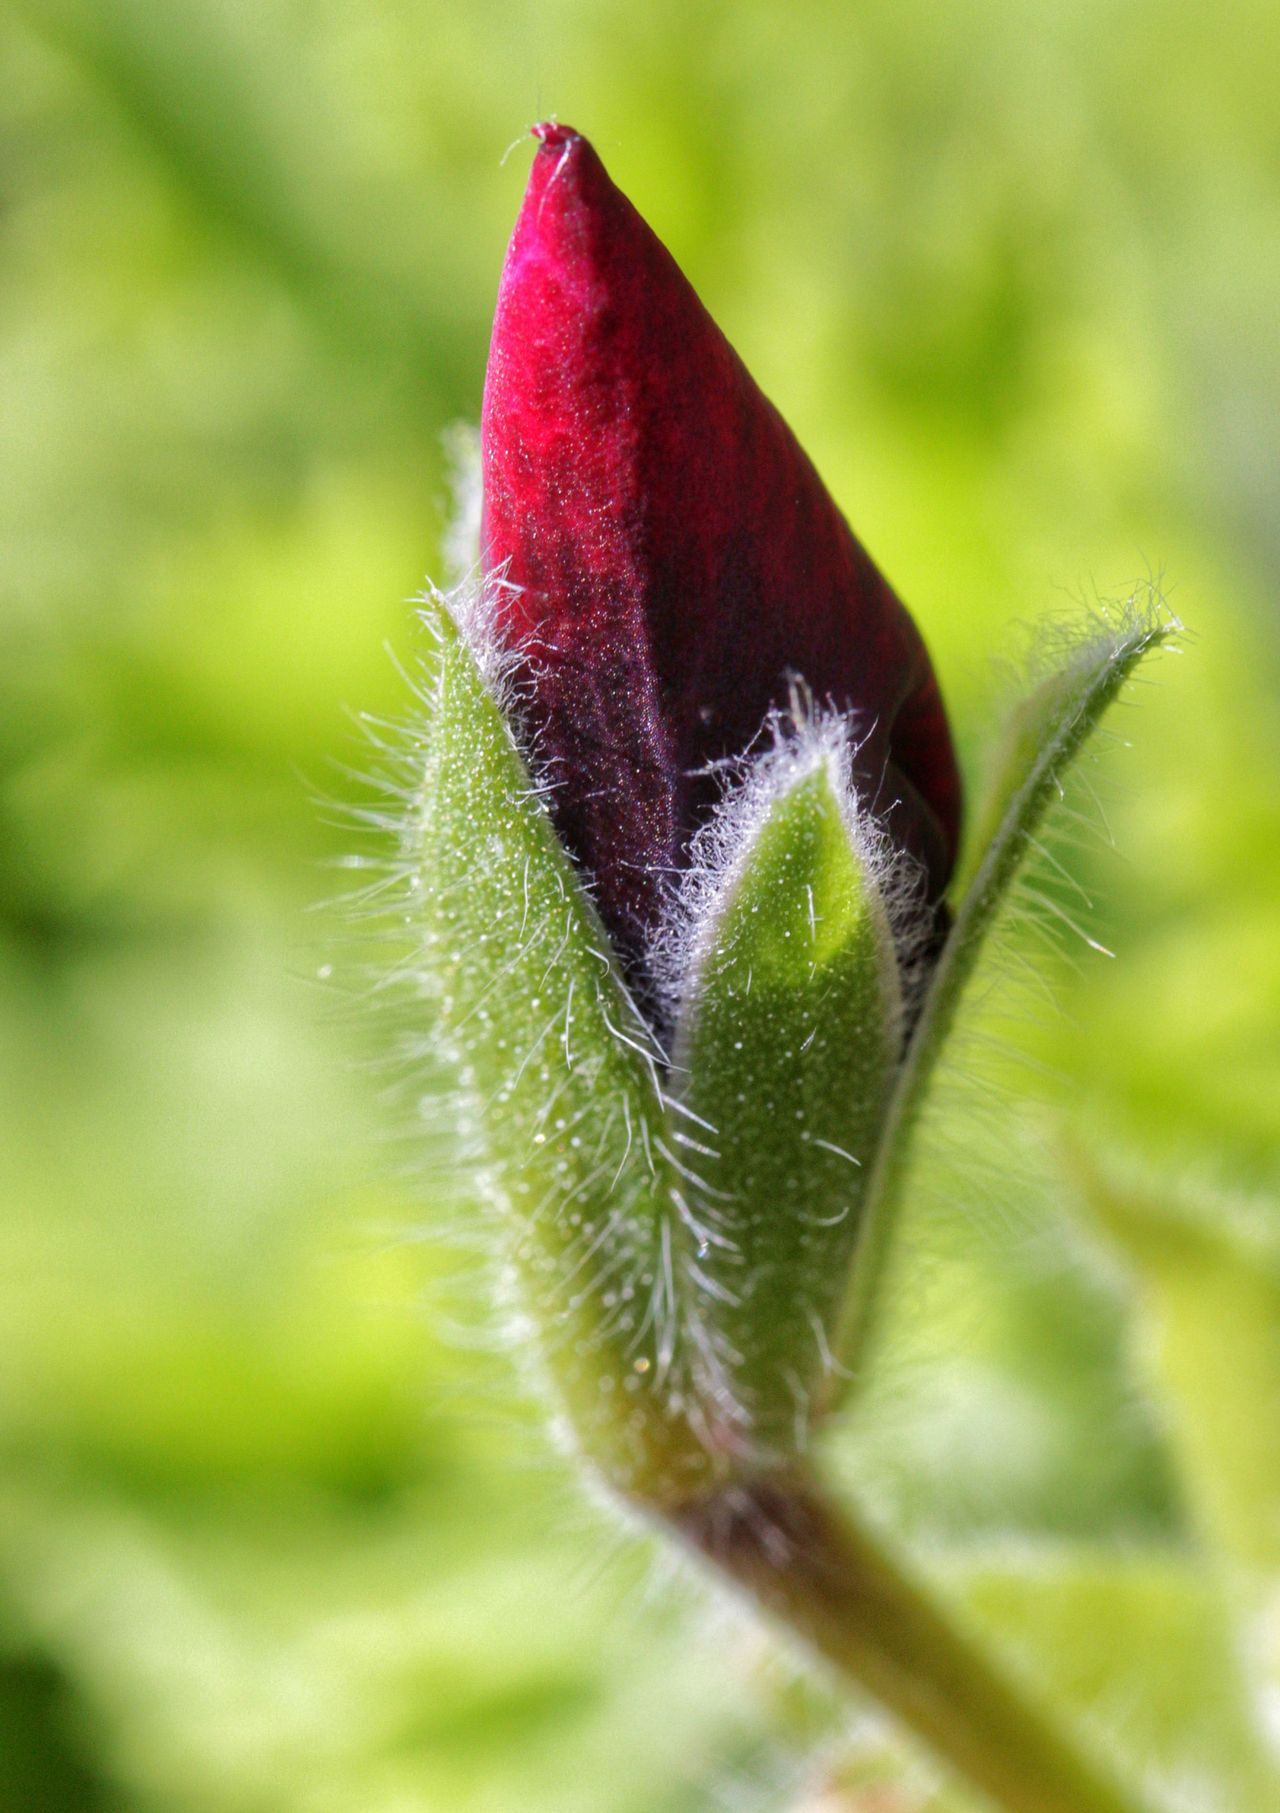 Bud Close-up Closed Bud Closed Red Bud Flower Flower Bud Flower Head Focus On Foreground Green Color Plant Red Red Bud Red Buds Red Flower Bud Red Flower Buds Selective Focus Single Flower Stem